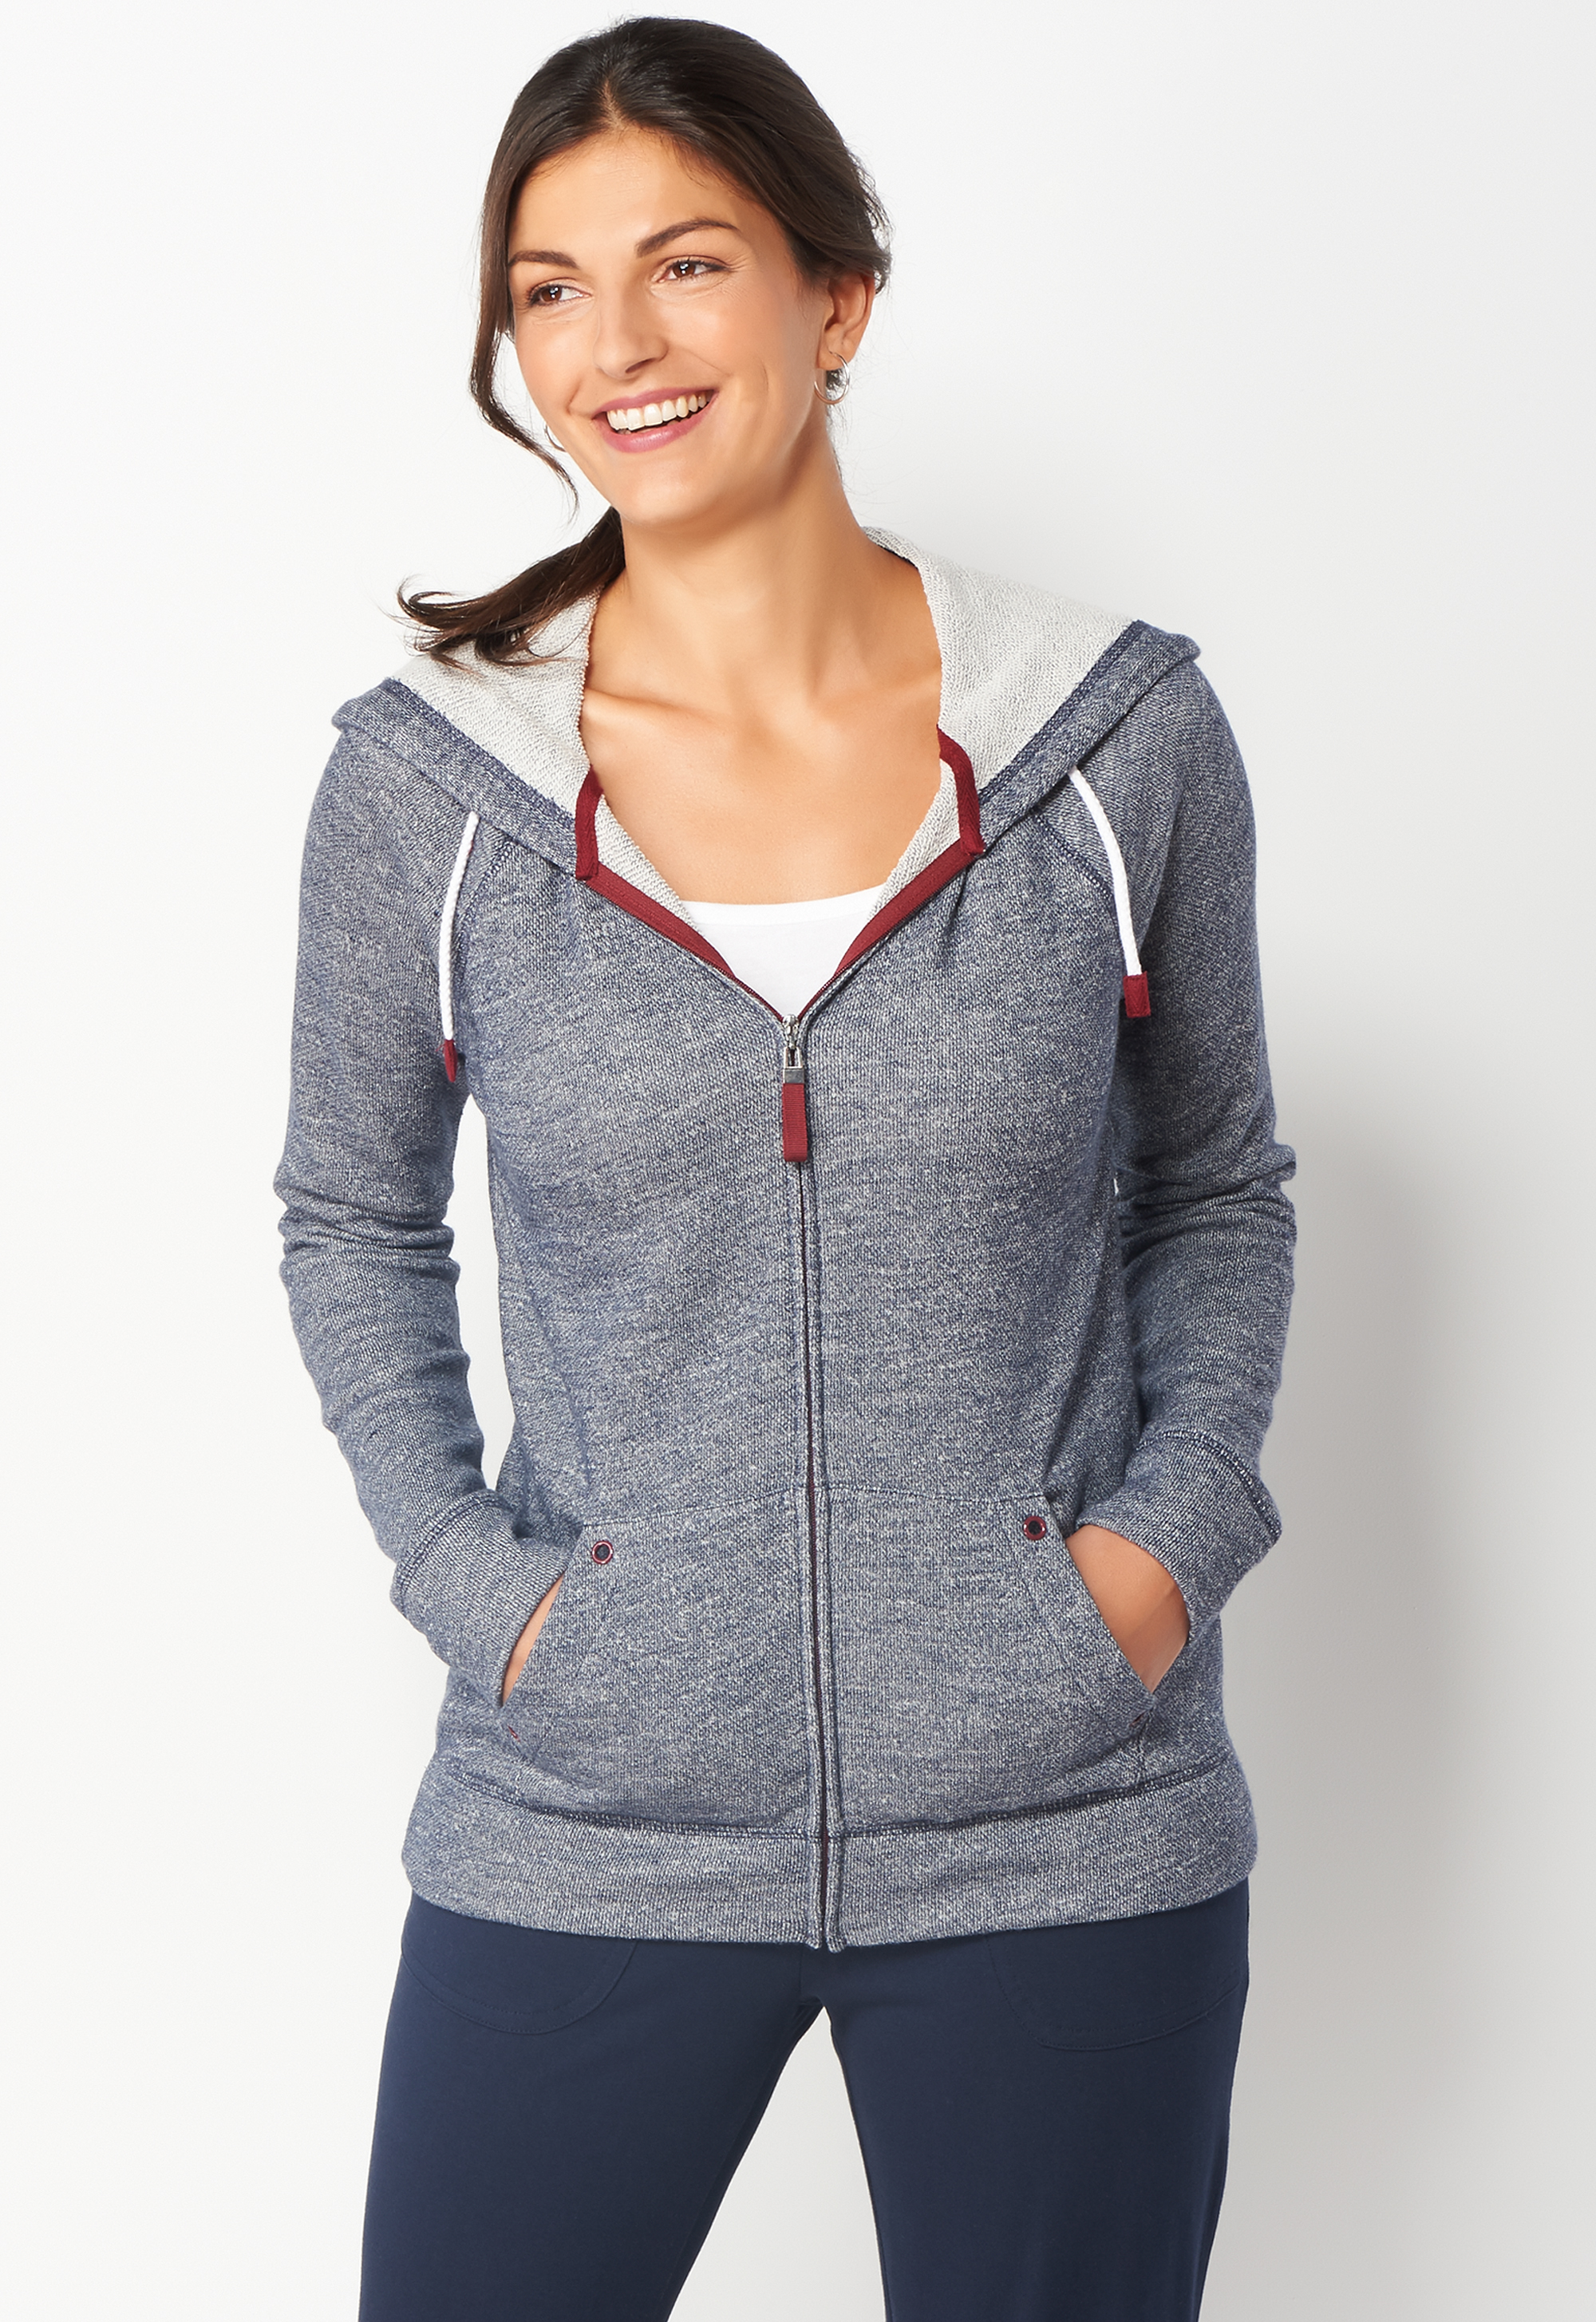 Relaxed Restyled French Terry Petite Zip Up Hoodie - Blue - Christopher & Banks 0036763205